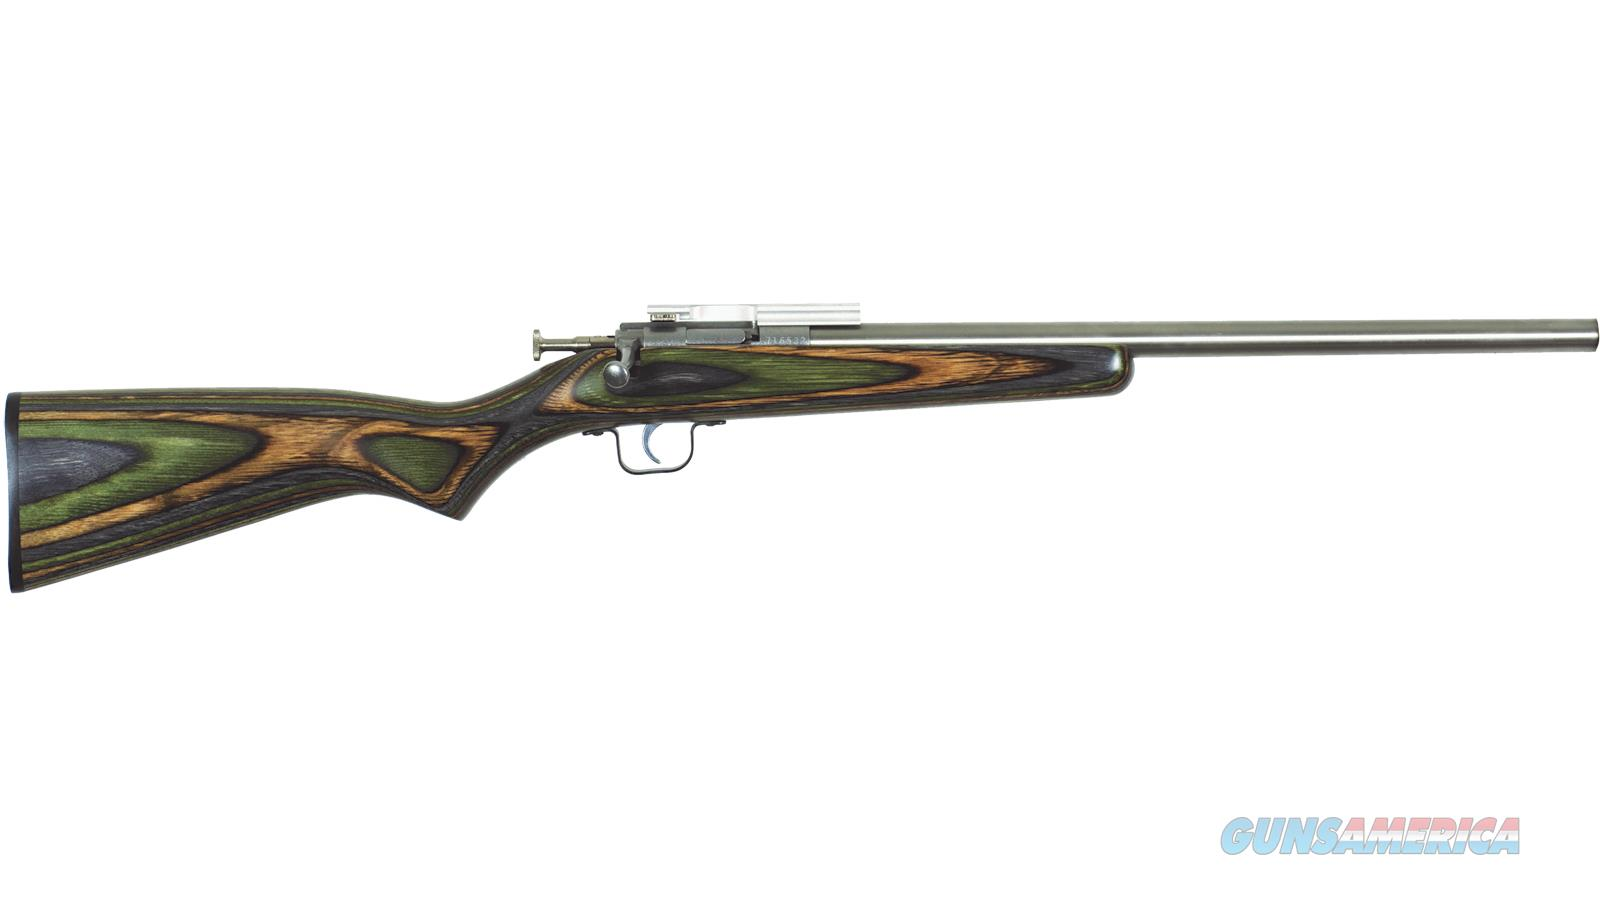 Keystone Sporting Arms Crickett Bolt Action Youth Rifle, 22 Lr, Single Shot, 1/2X28 Threaded Bull Barrel, Ez Loader, Mount, Camo Laminate, Ss Bbl KSA2132  Guns > Rifles > K Misc Rifles